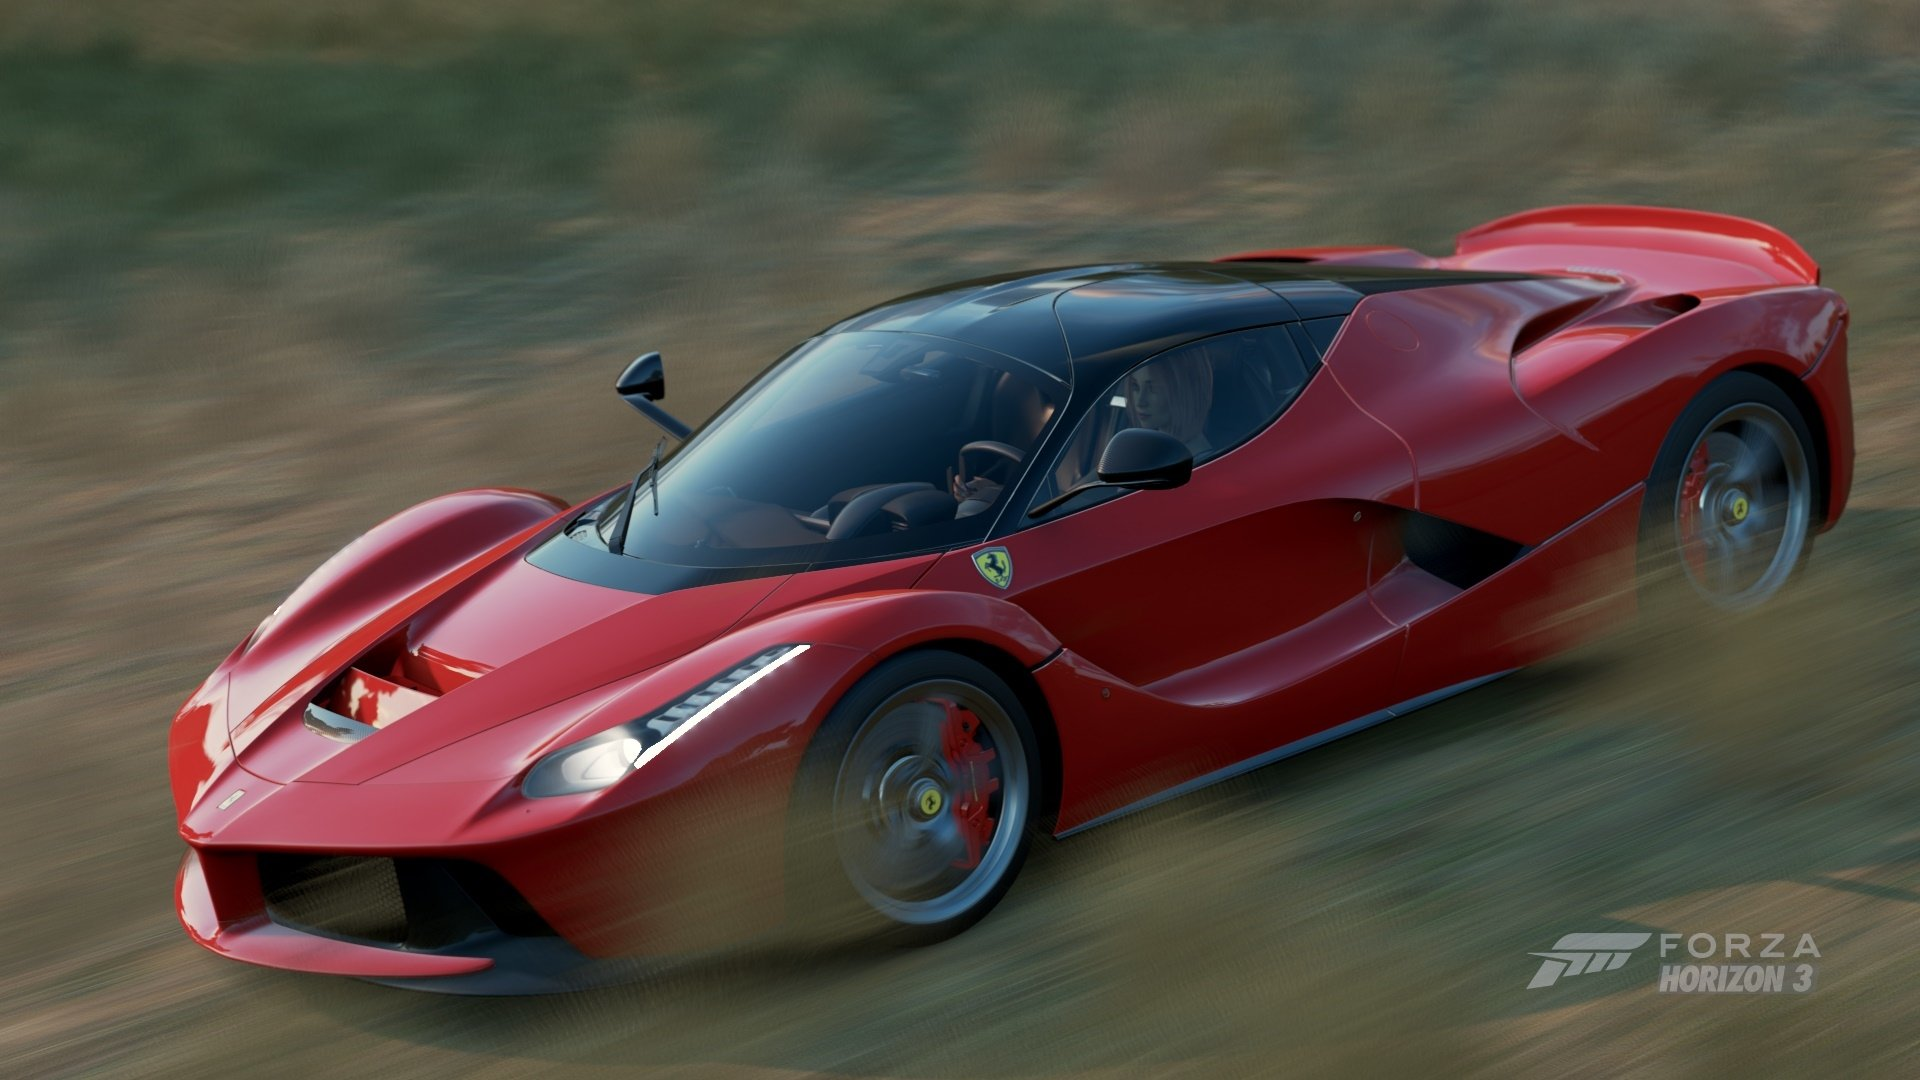 22 ferrari laferrari hd wallpapers | background images - wallpaper abyss